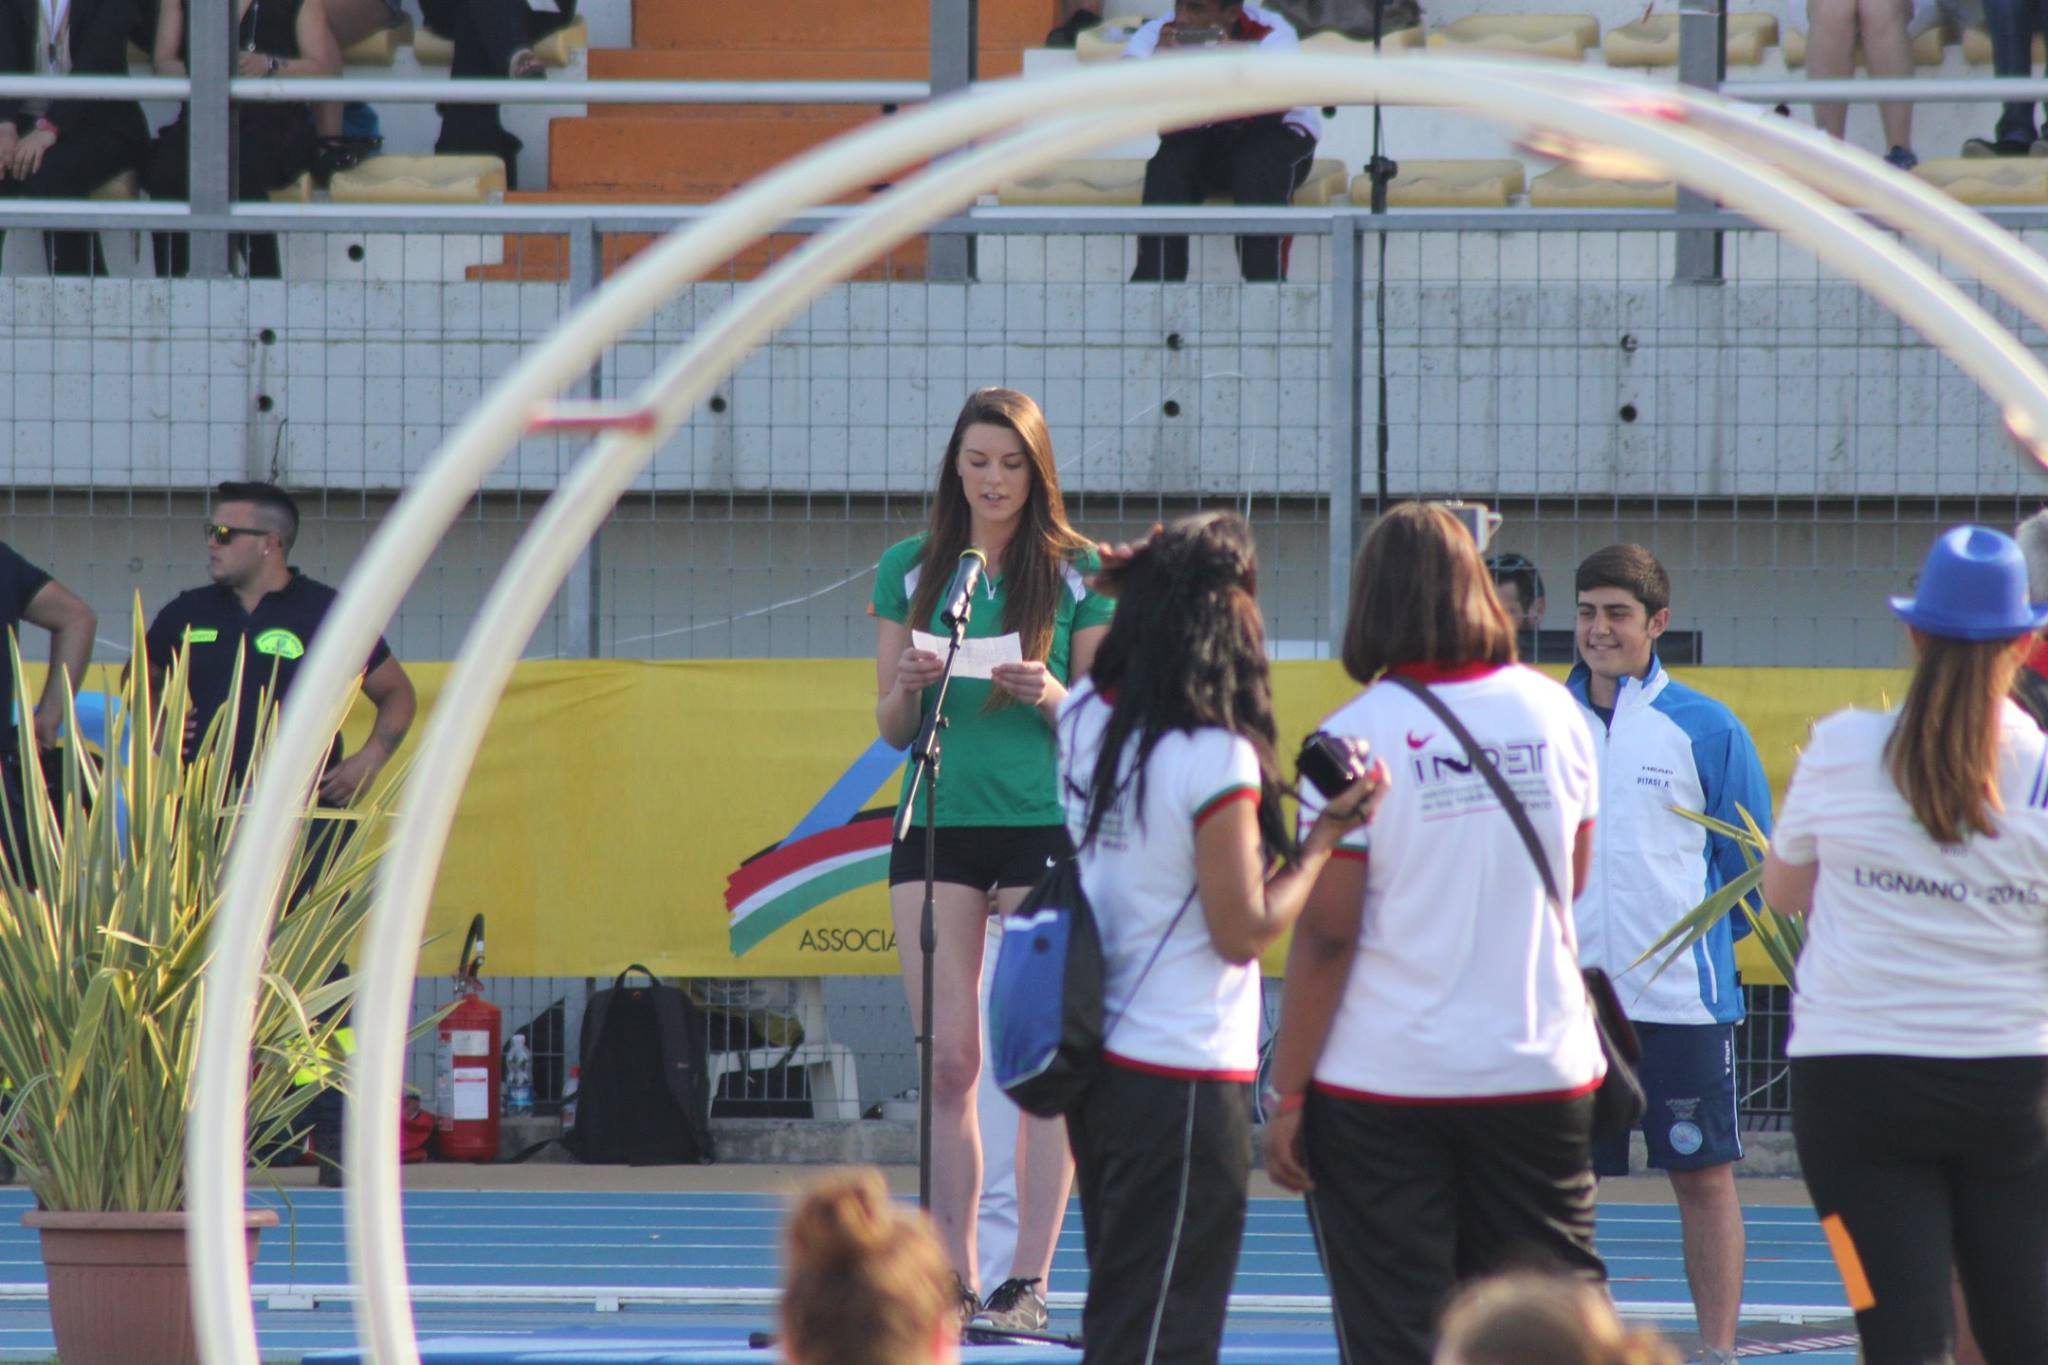 Emily Rogers reading Oath at CSIT World Sports Games Opening Ceremony (Italy, June 2015)